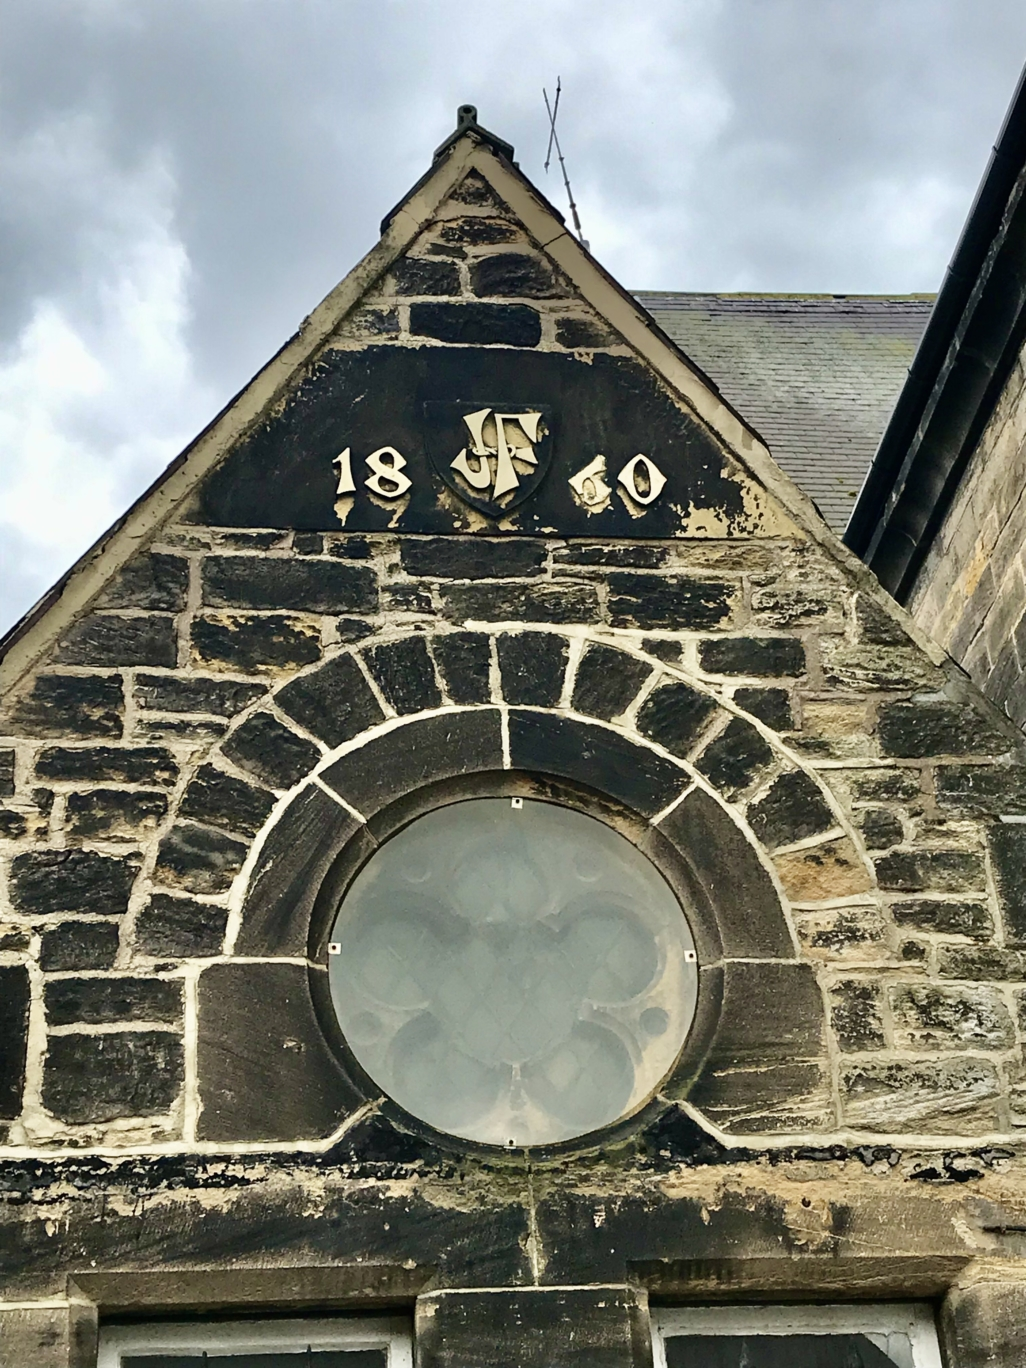 On the outside wall of the presbytery at St. Anthony's you can see the initials JF emblazoned on a shield and the date 1860 cut out of the stonework